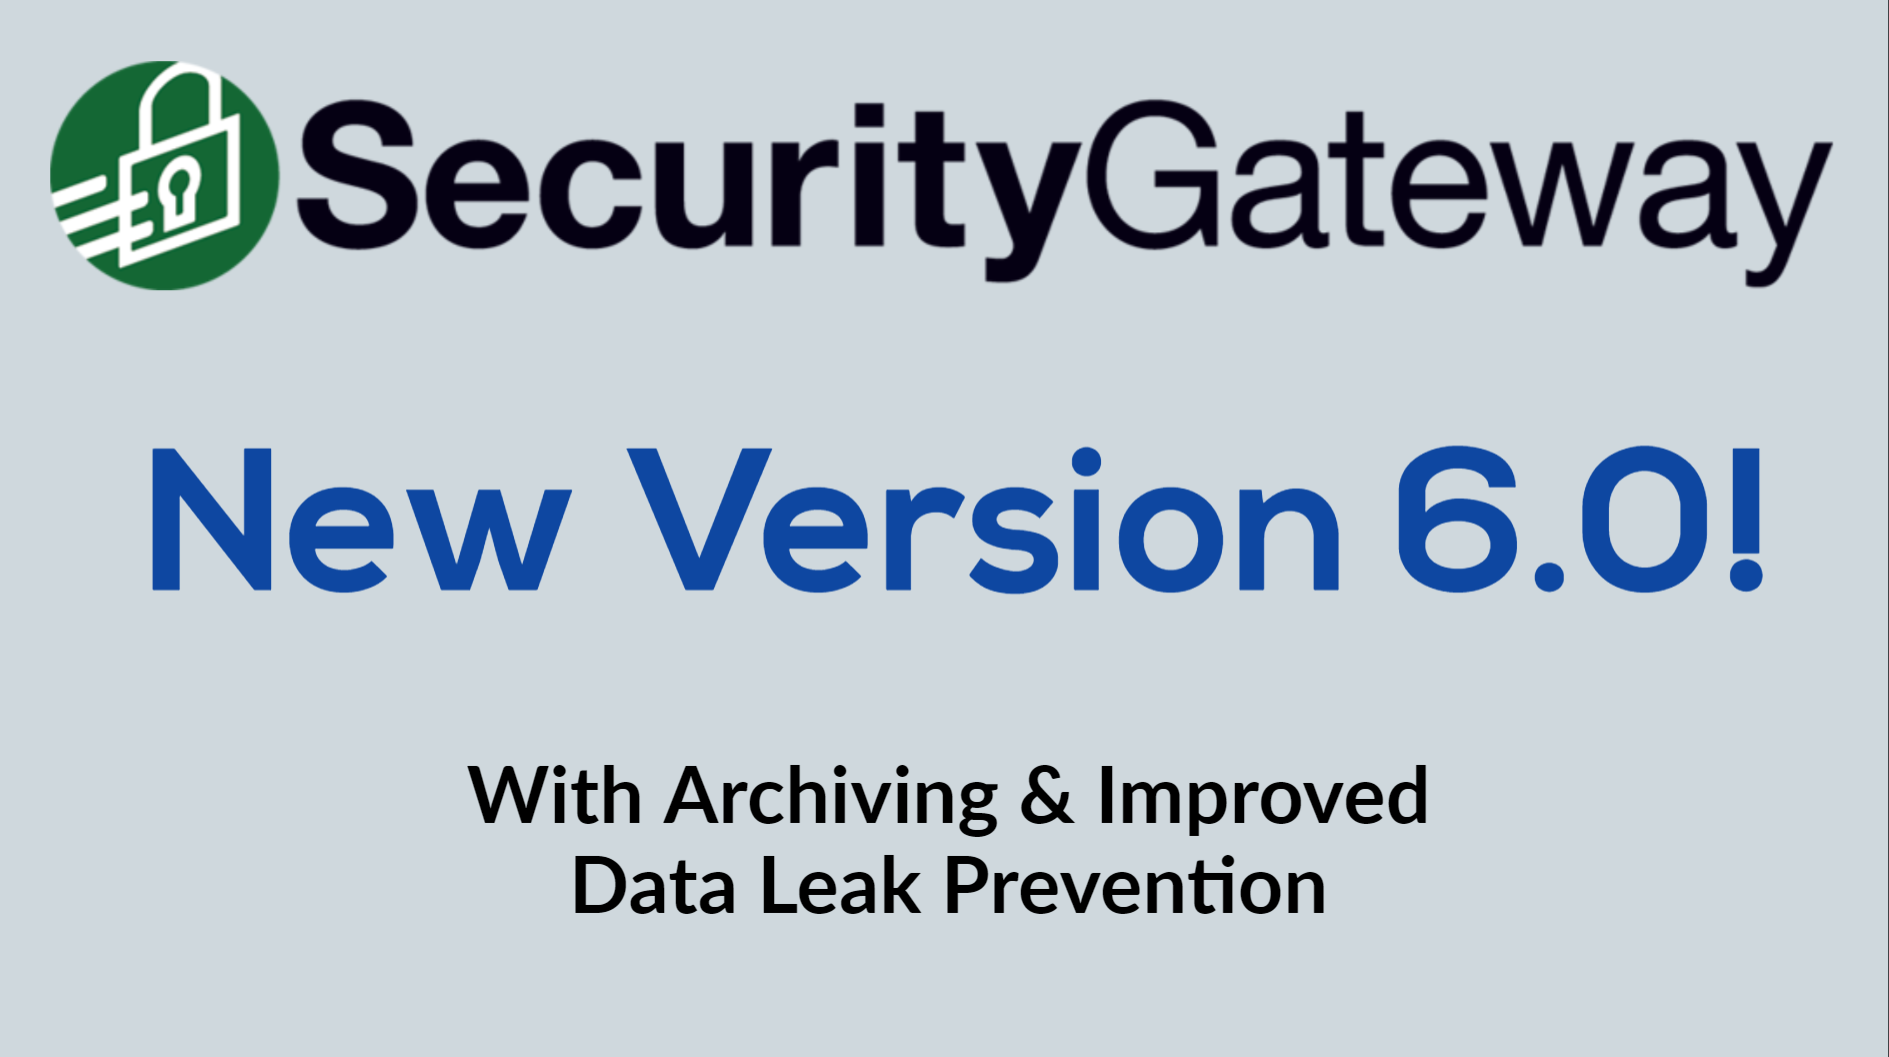 SecurityGateway 6.0 with Archiving